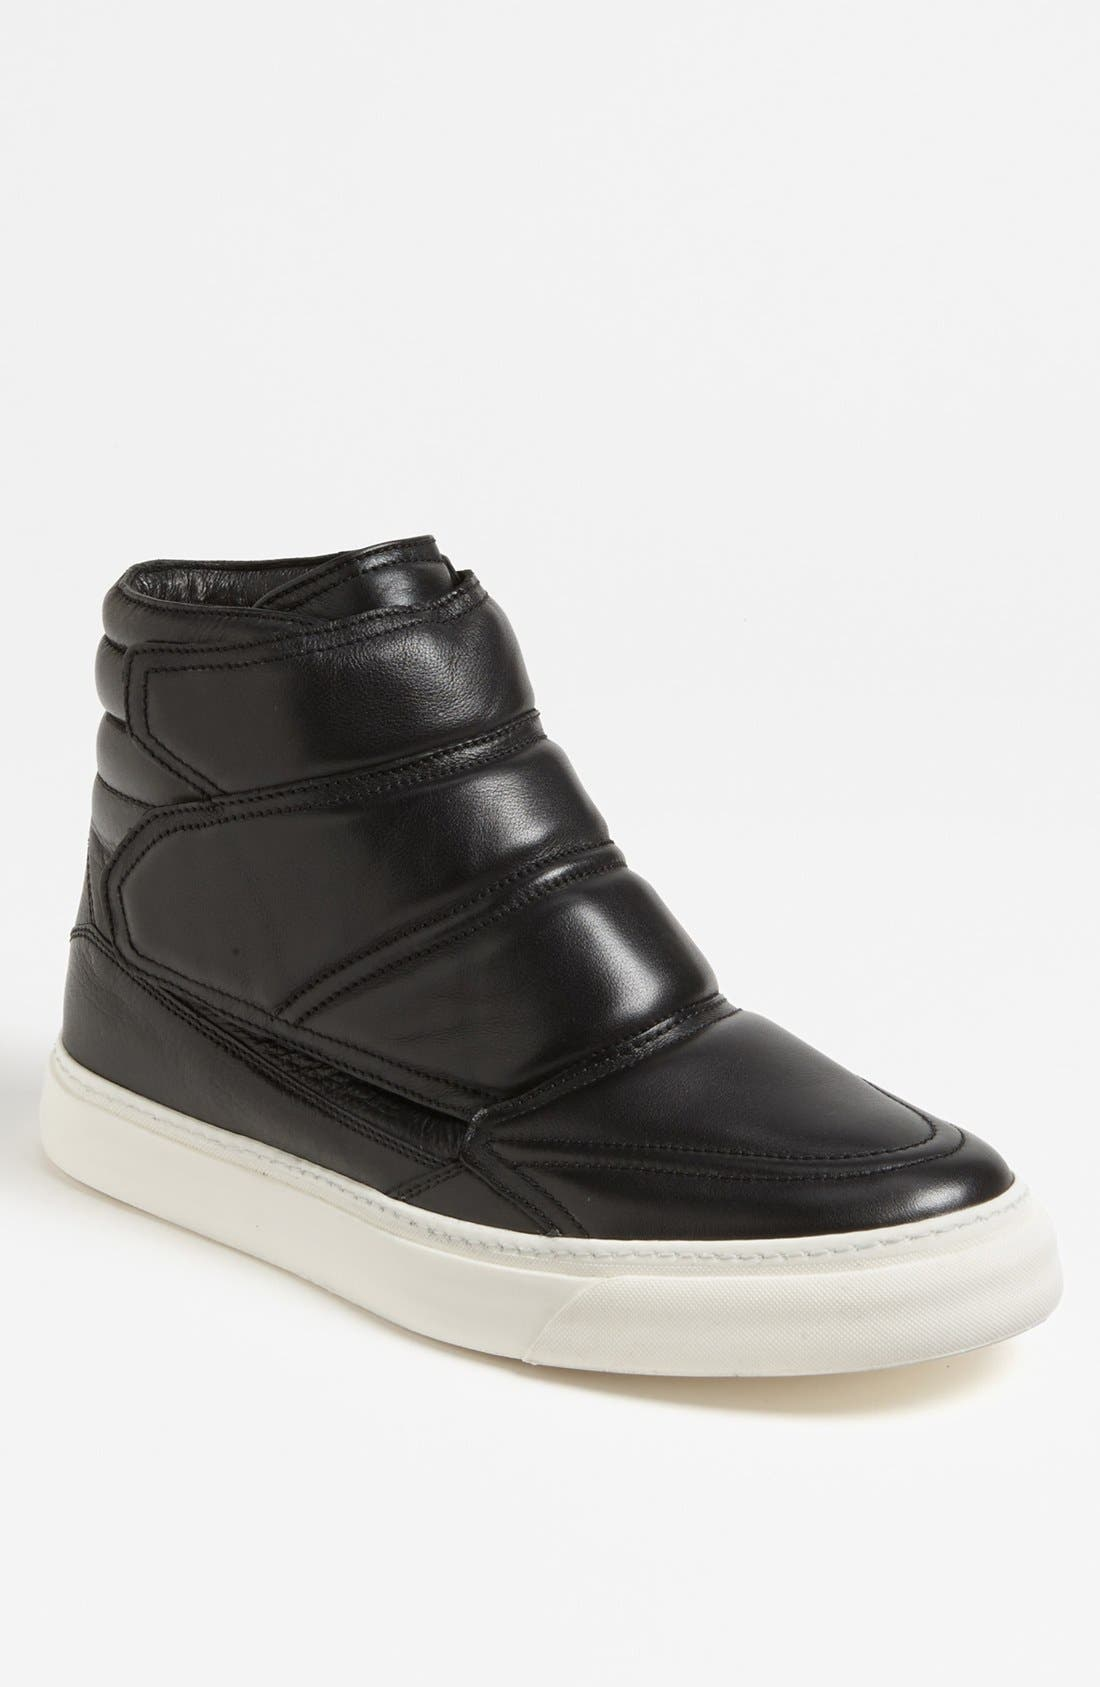 Alternate Image 1 Selected - McQ by Alexander McQueen Leather High Cut Sneaker